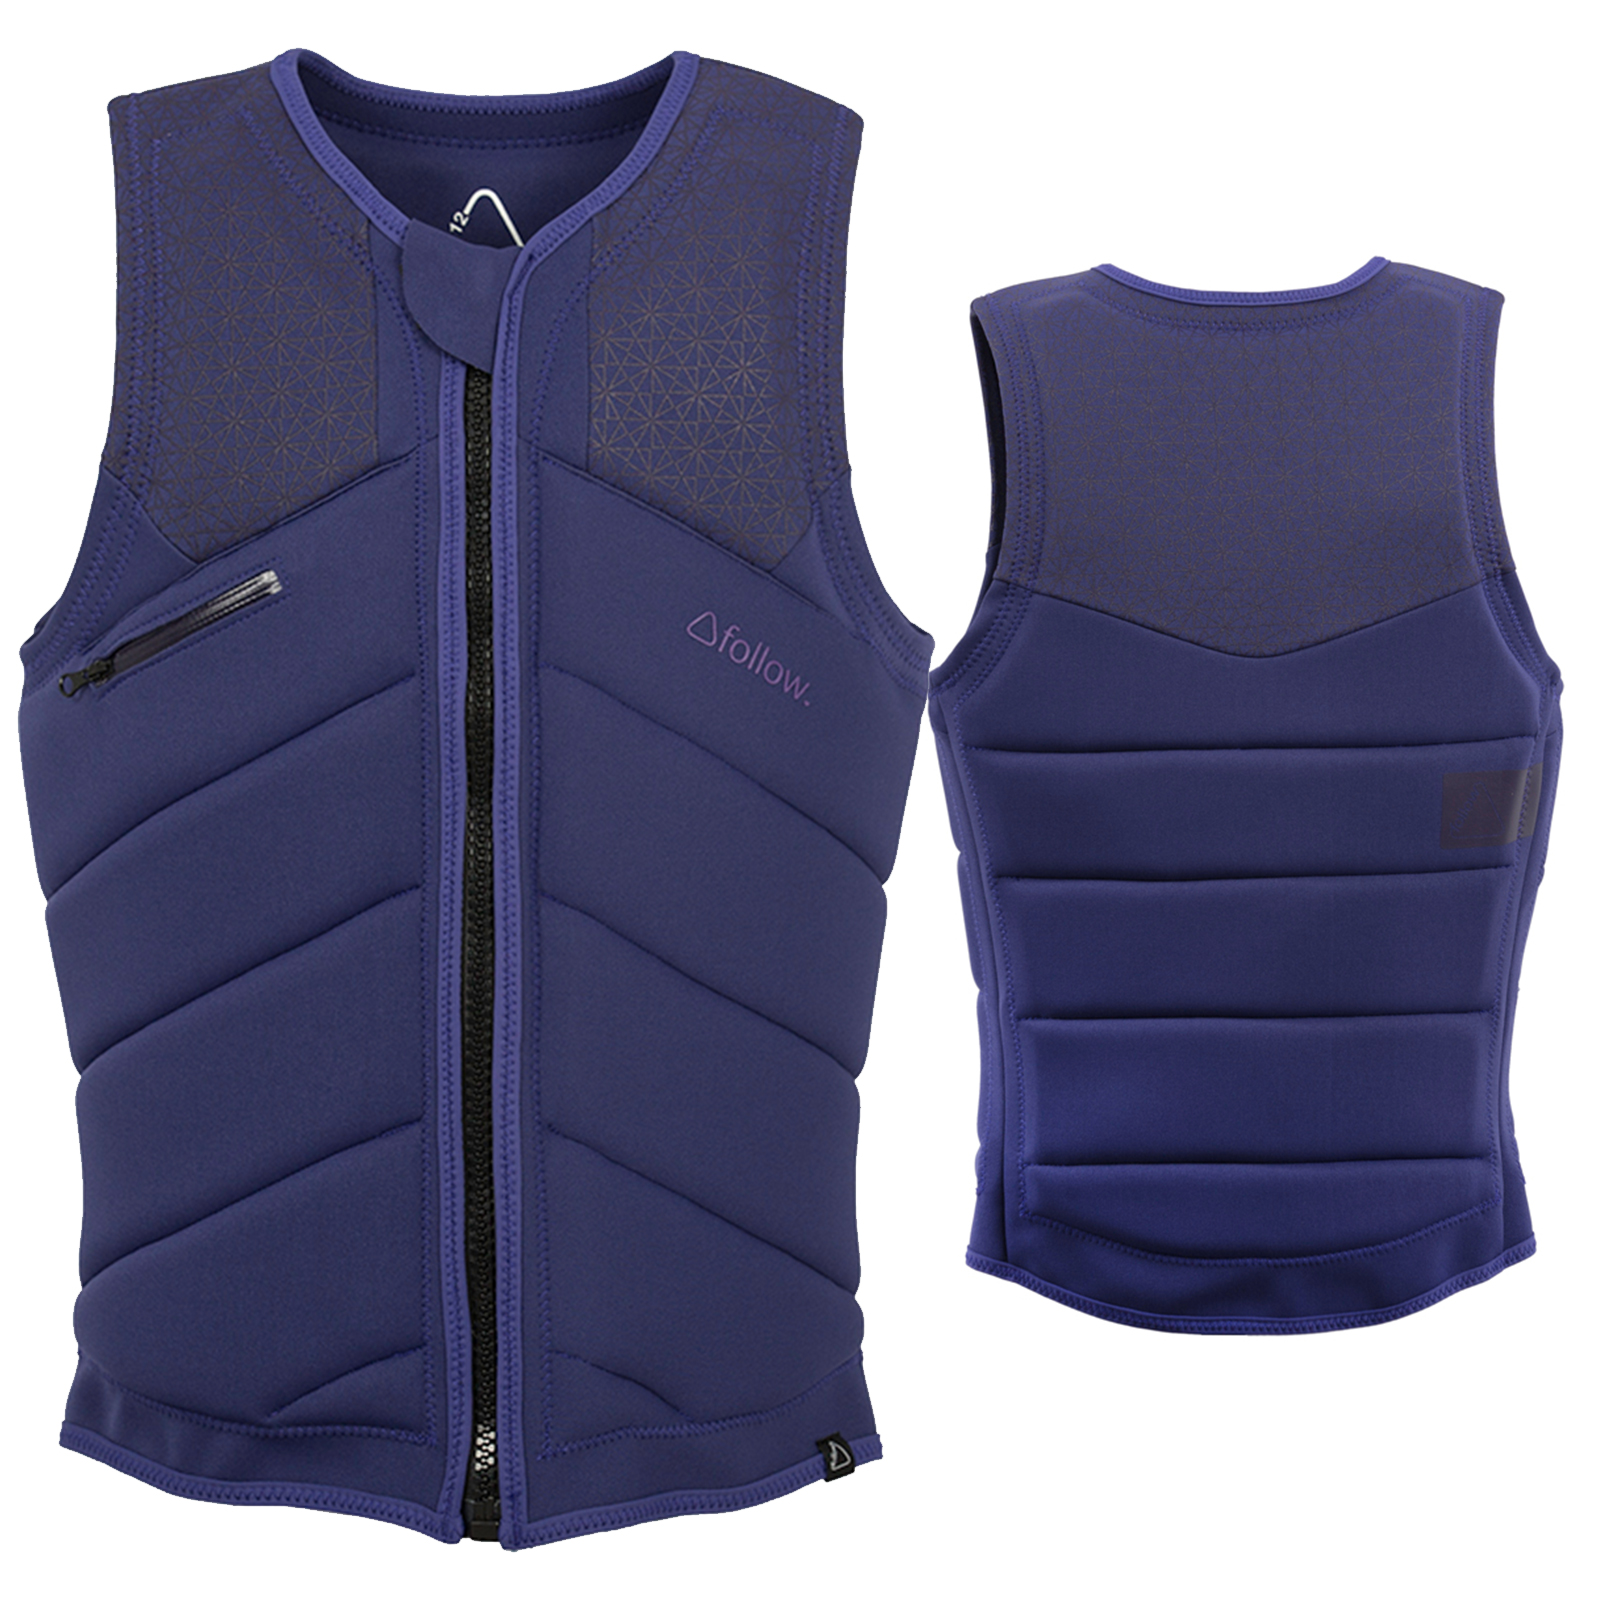 LACE PRO LADIES IMPACT VEST MIDNIGHT FOLLOW 2018